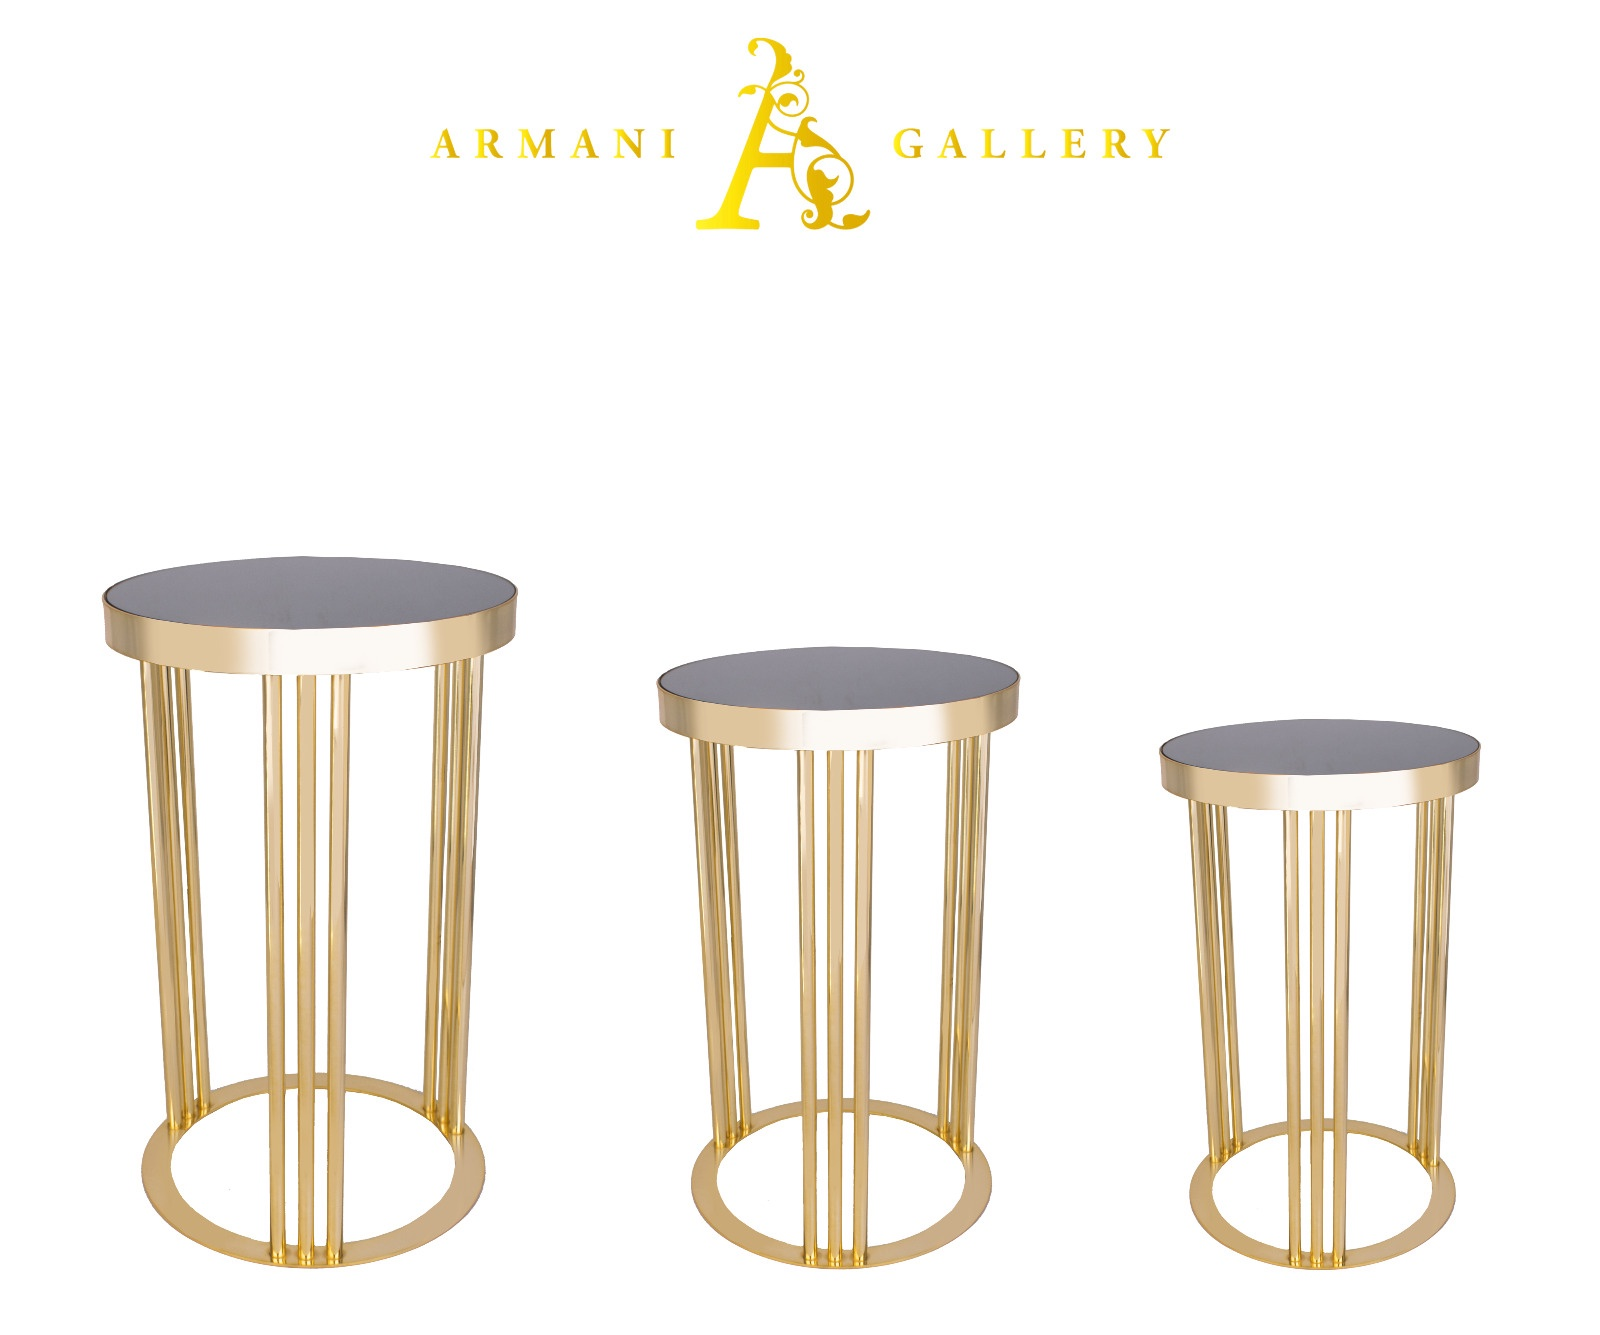 Buy Gold Mirrored Nest of Tables - Style 2